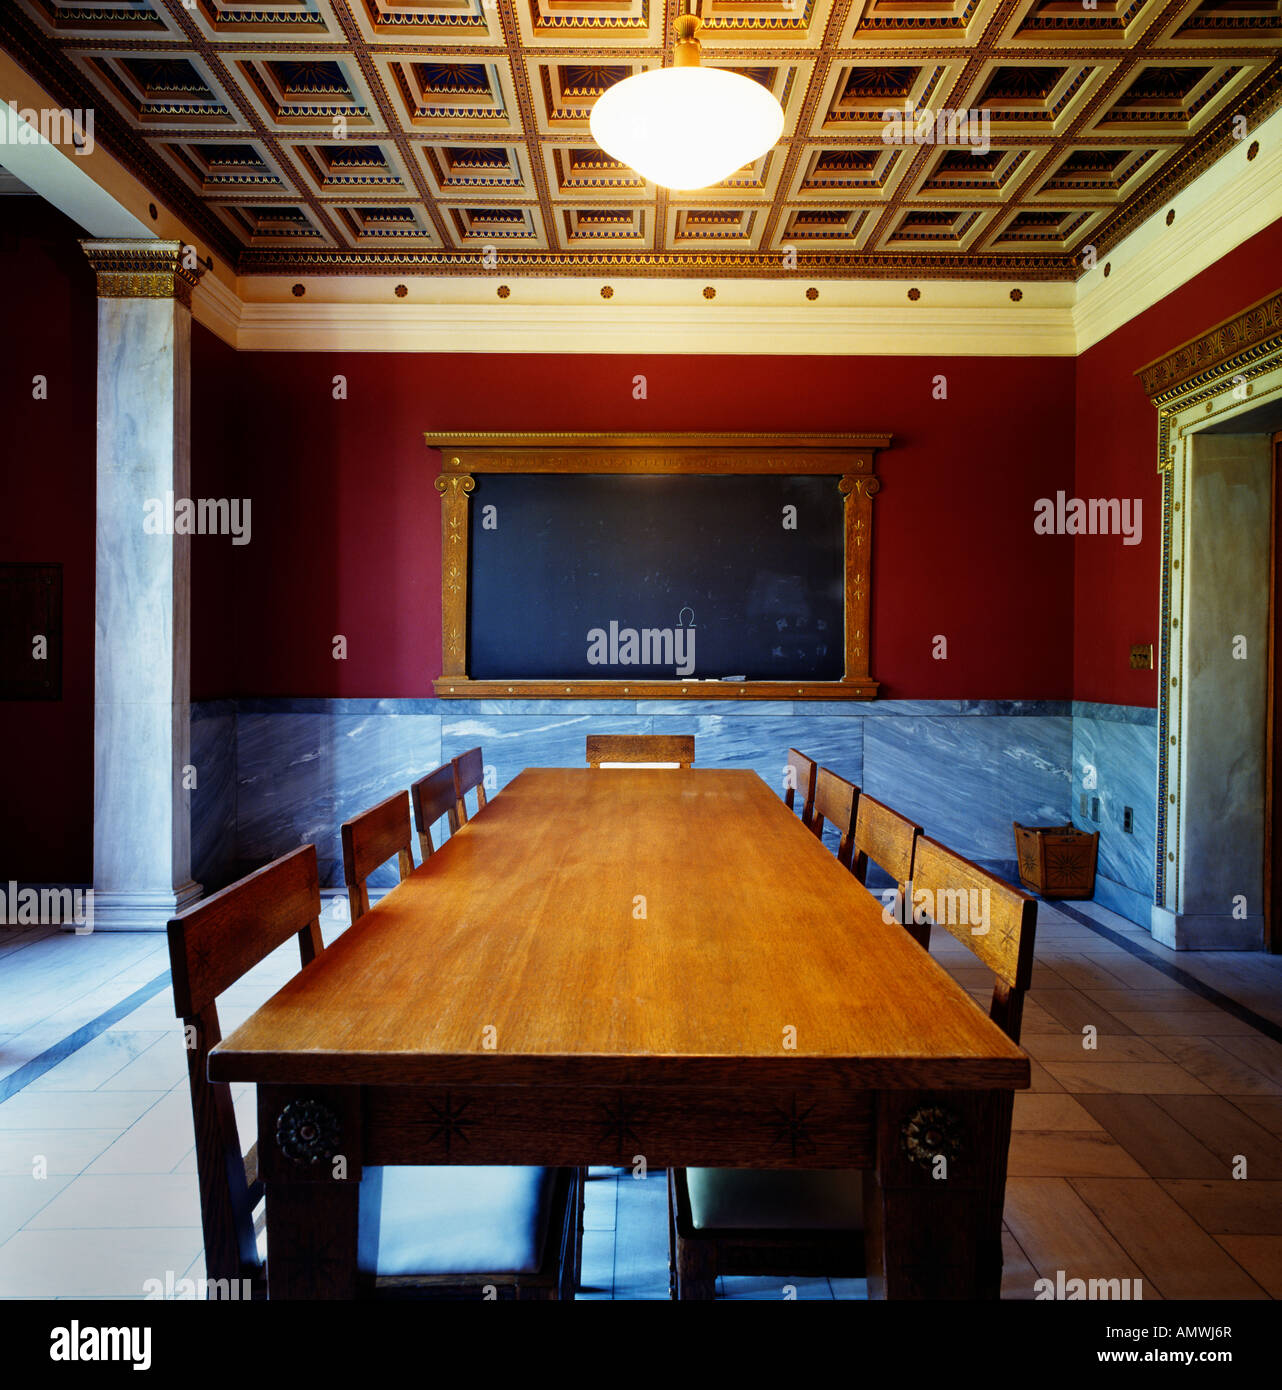 Historical Classroom Stock Photos & Historical Classroom Stock ...